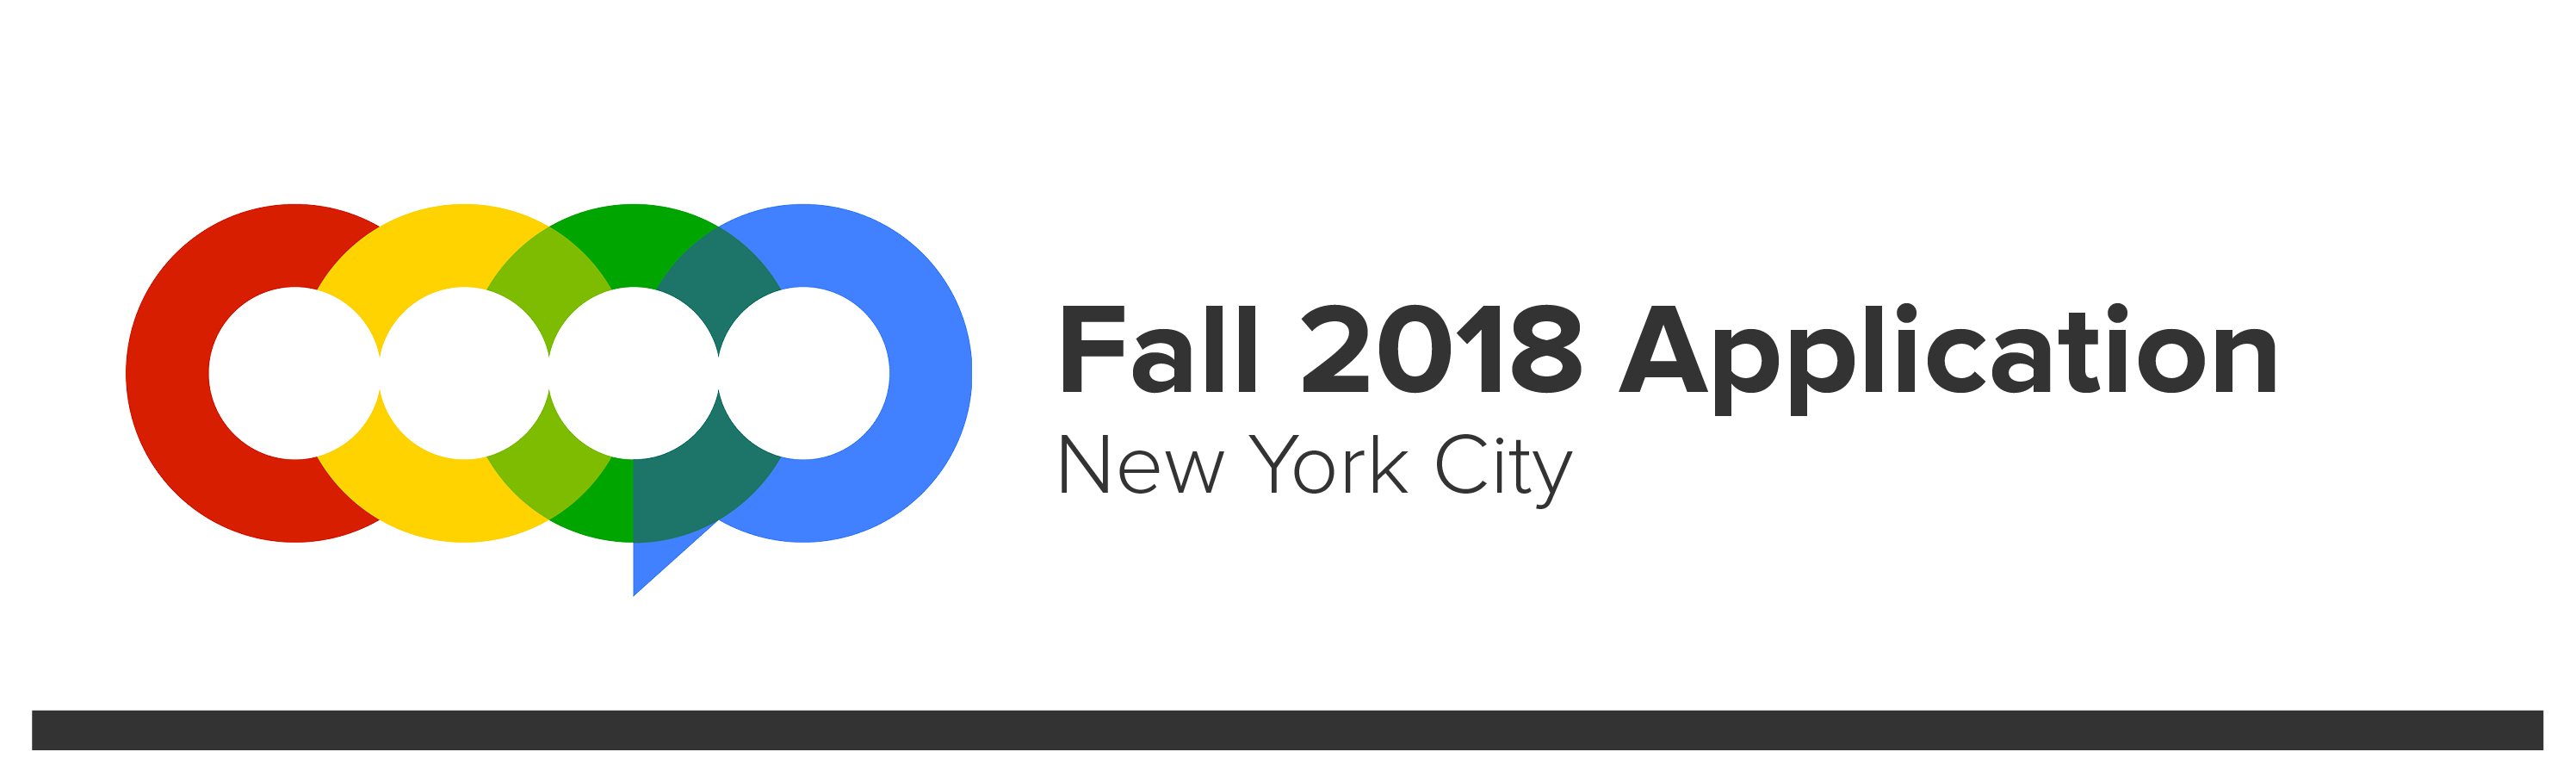 COOP Fall 2018 Application NYC